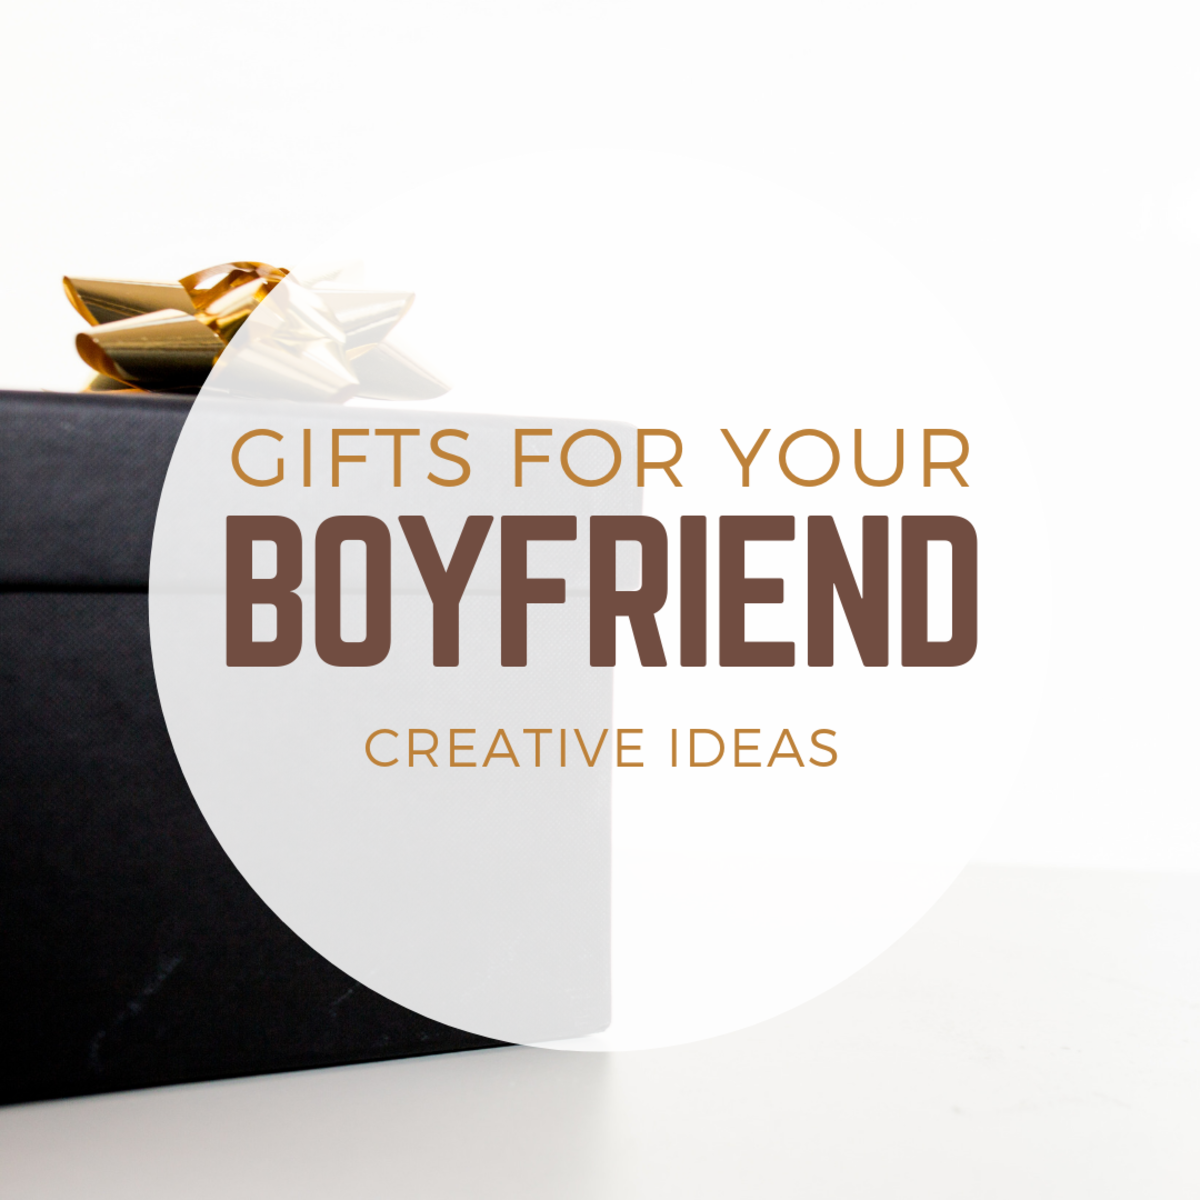 10 Simple Valentine's Day Gift Ideas for Your Boyfriend